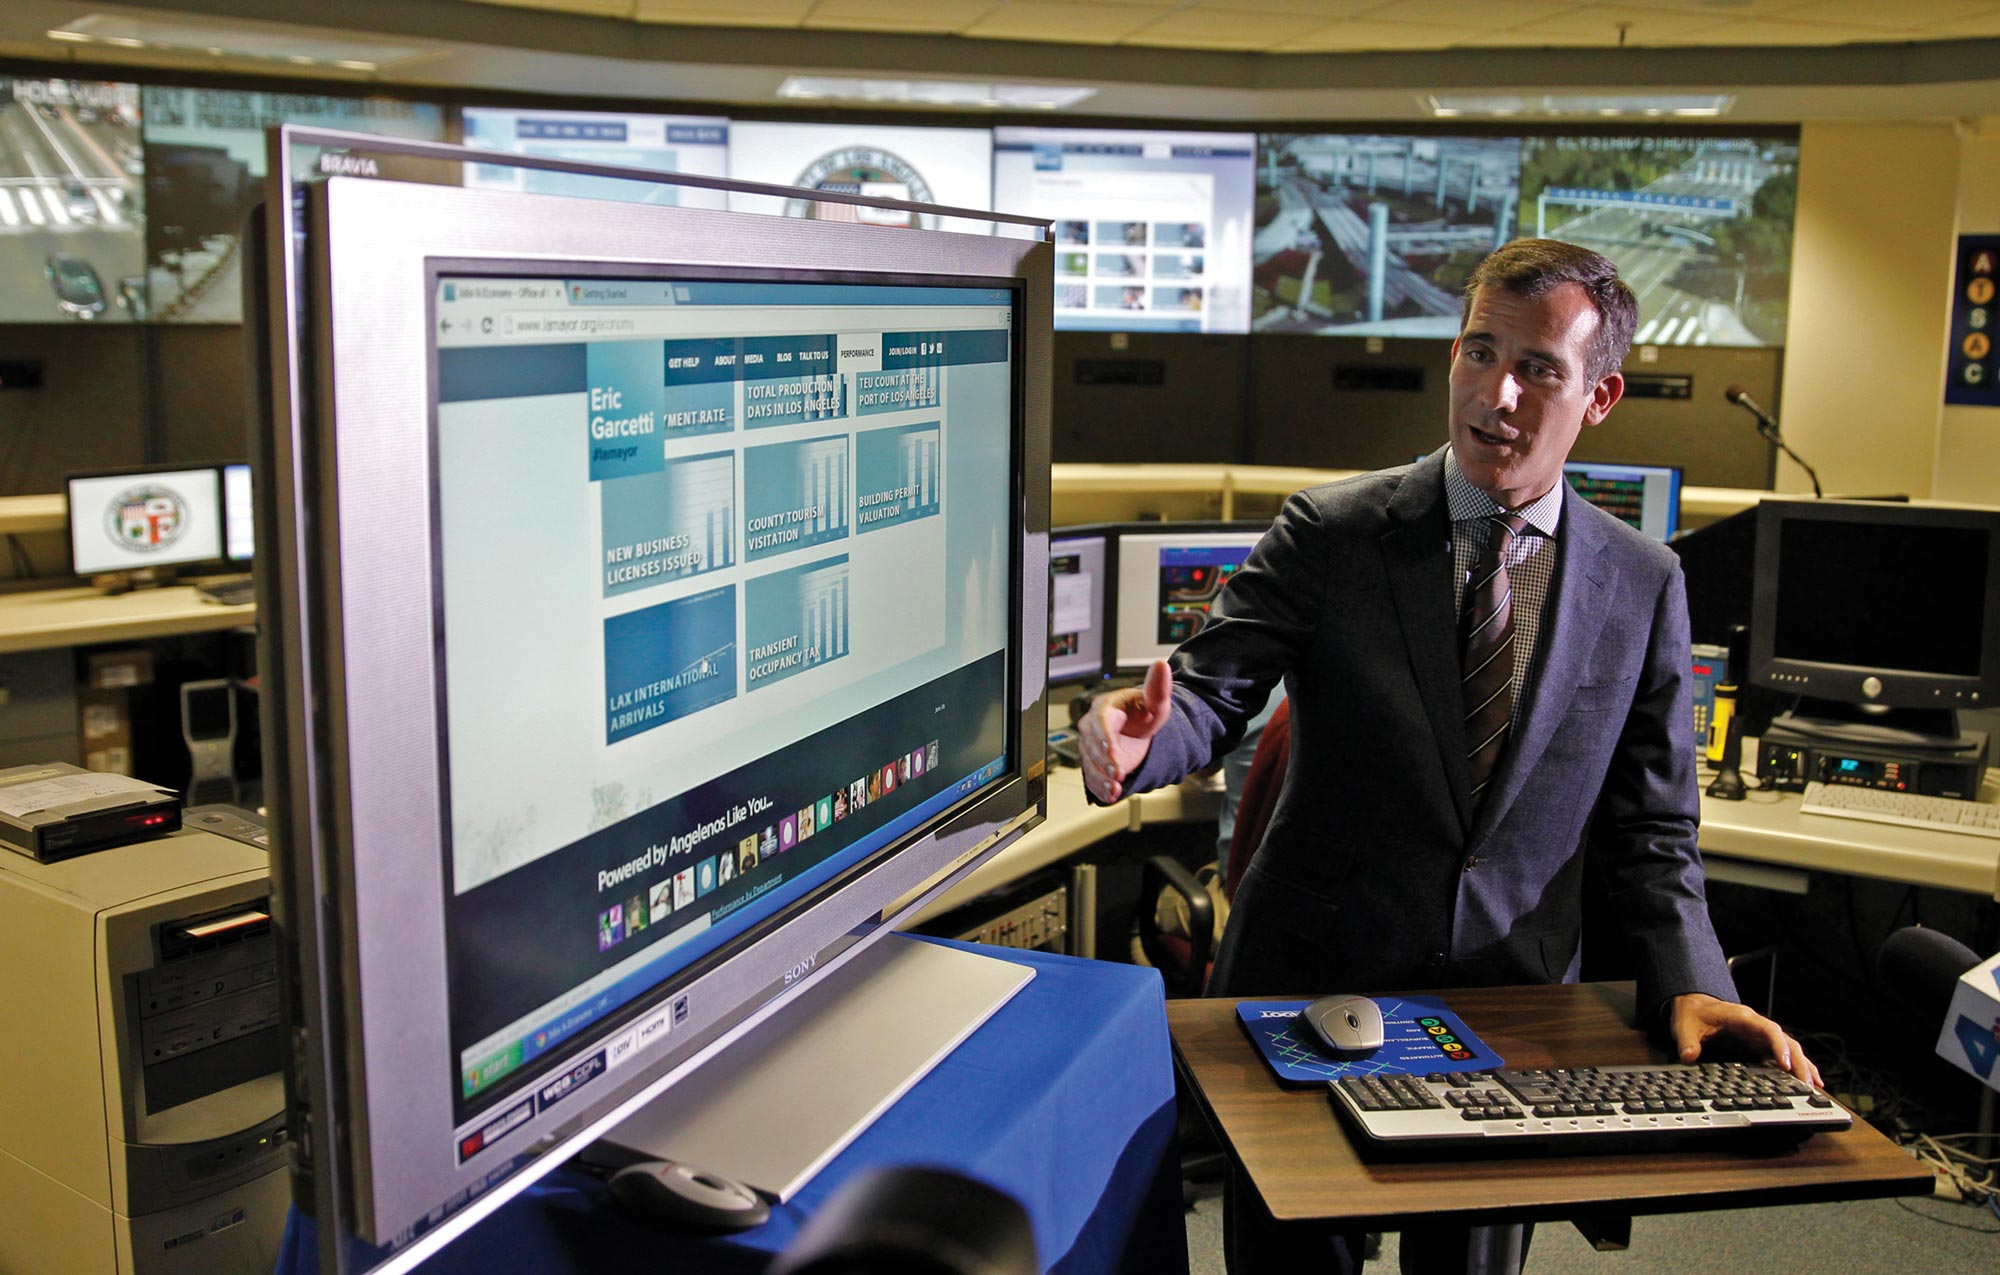 Mayor Eric Garcetti of Los Angeles, California, unveils a city website with detailed information on street repairs, ambulance response times, and other city services.